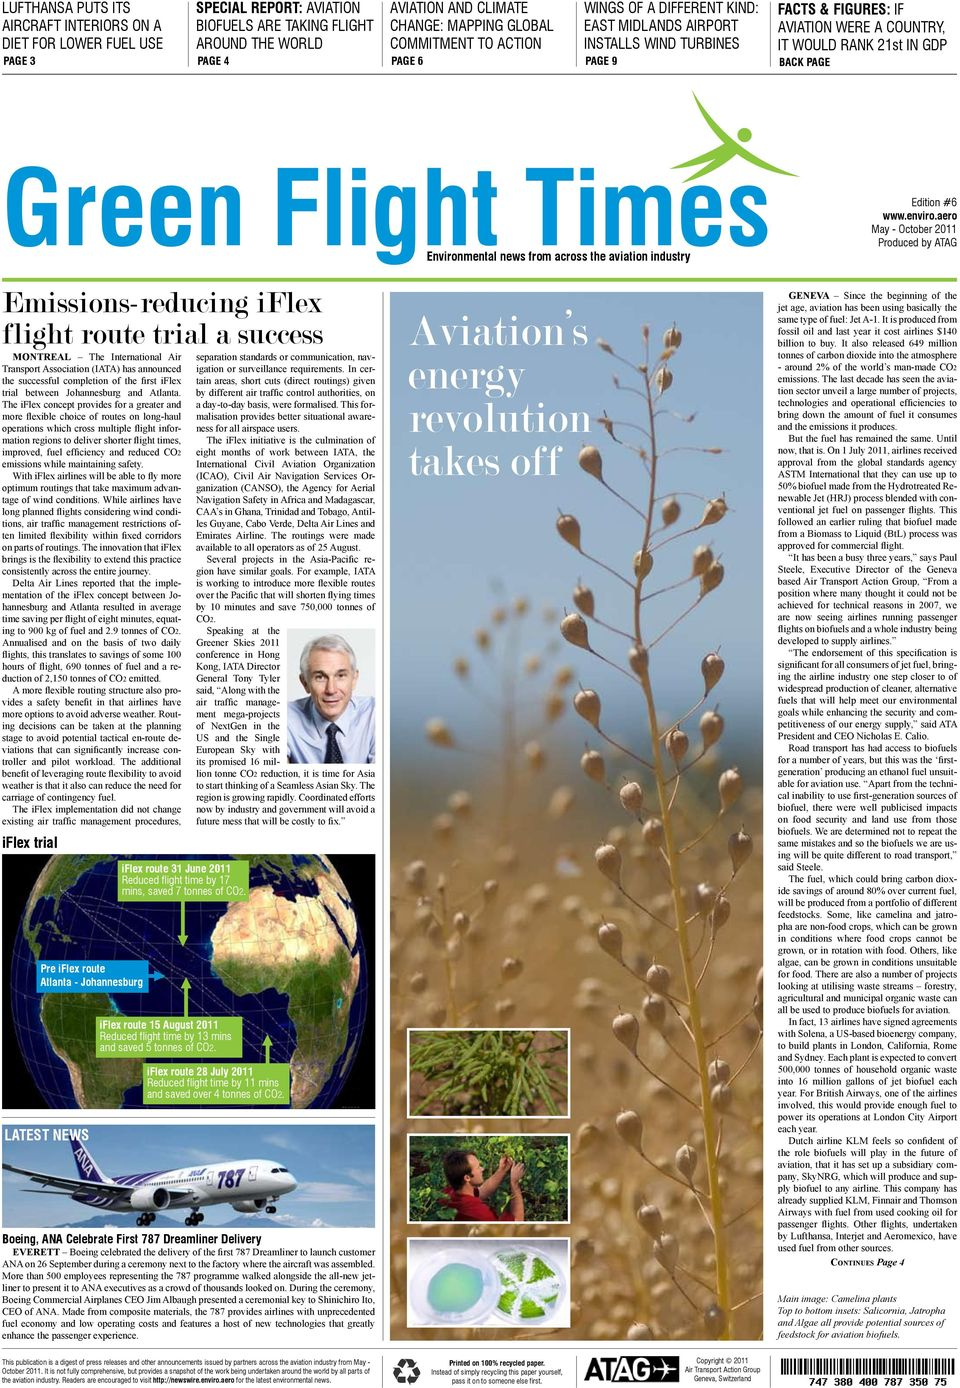 Environmental news from across the aviation industry Edition #6 www.enviro.